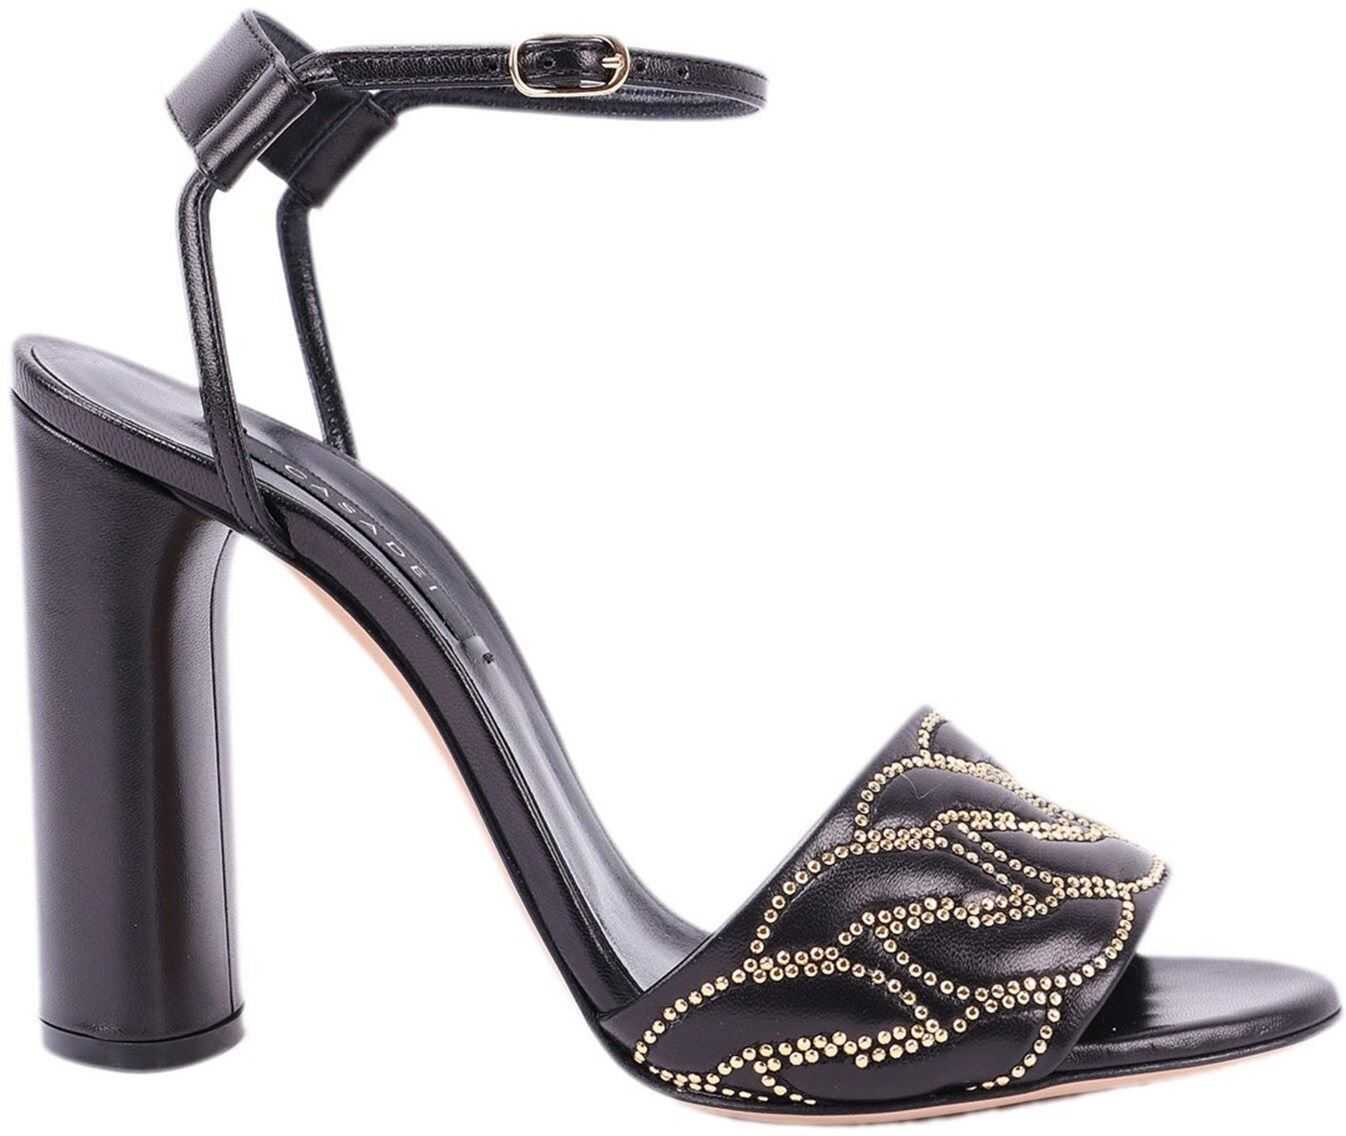 Casadei Catenassé Quilted Leather Rhinestone Sandals Black